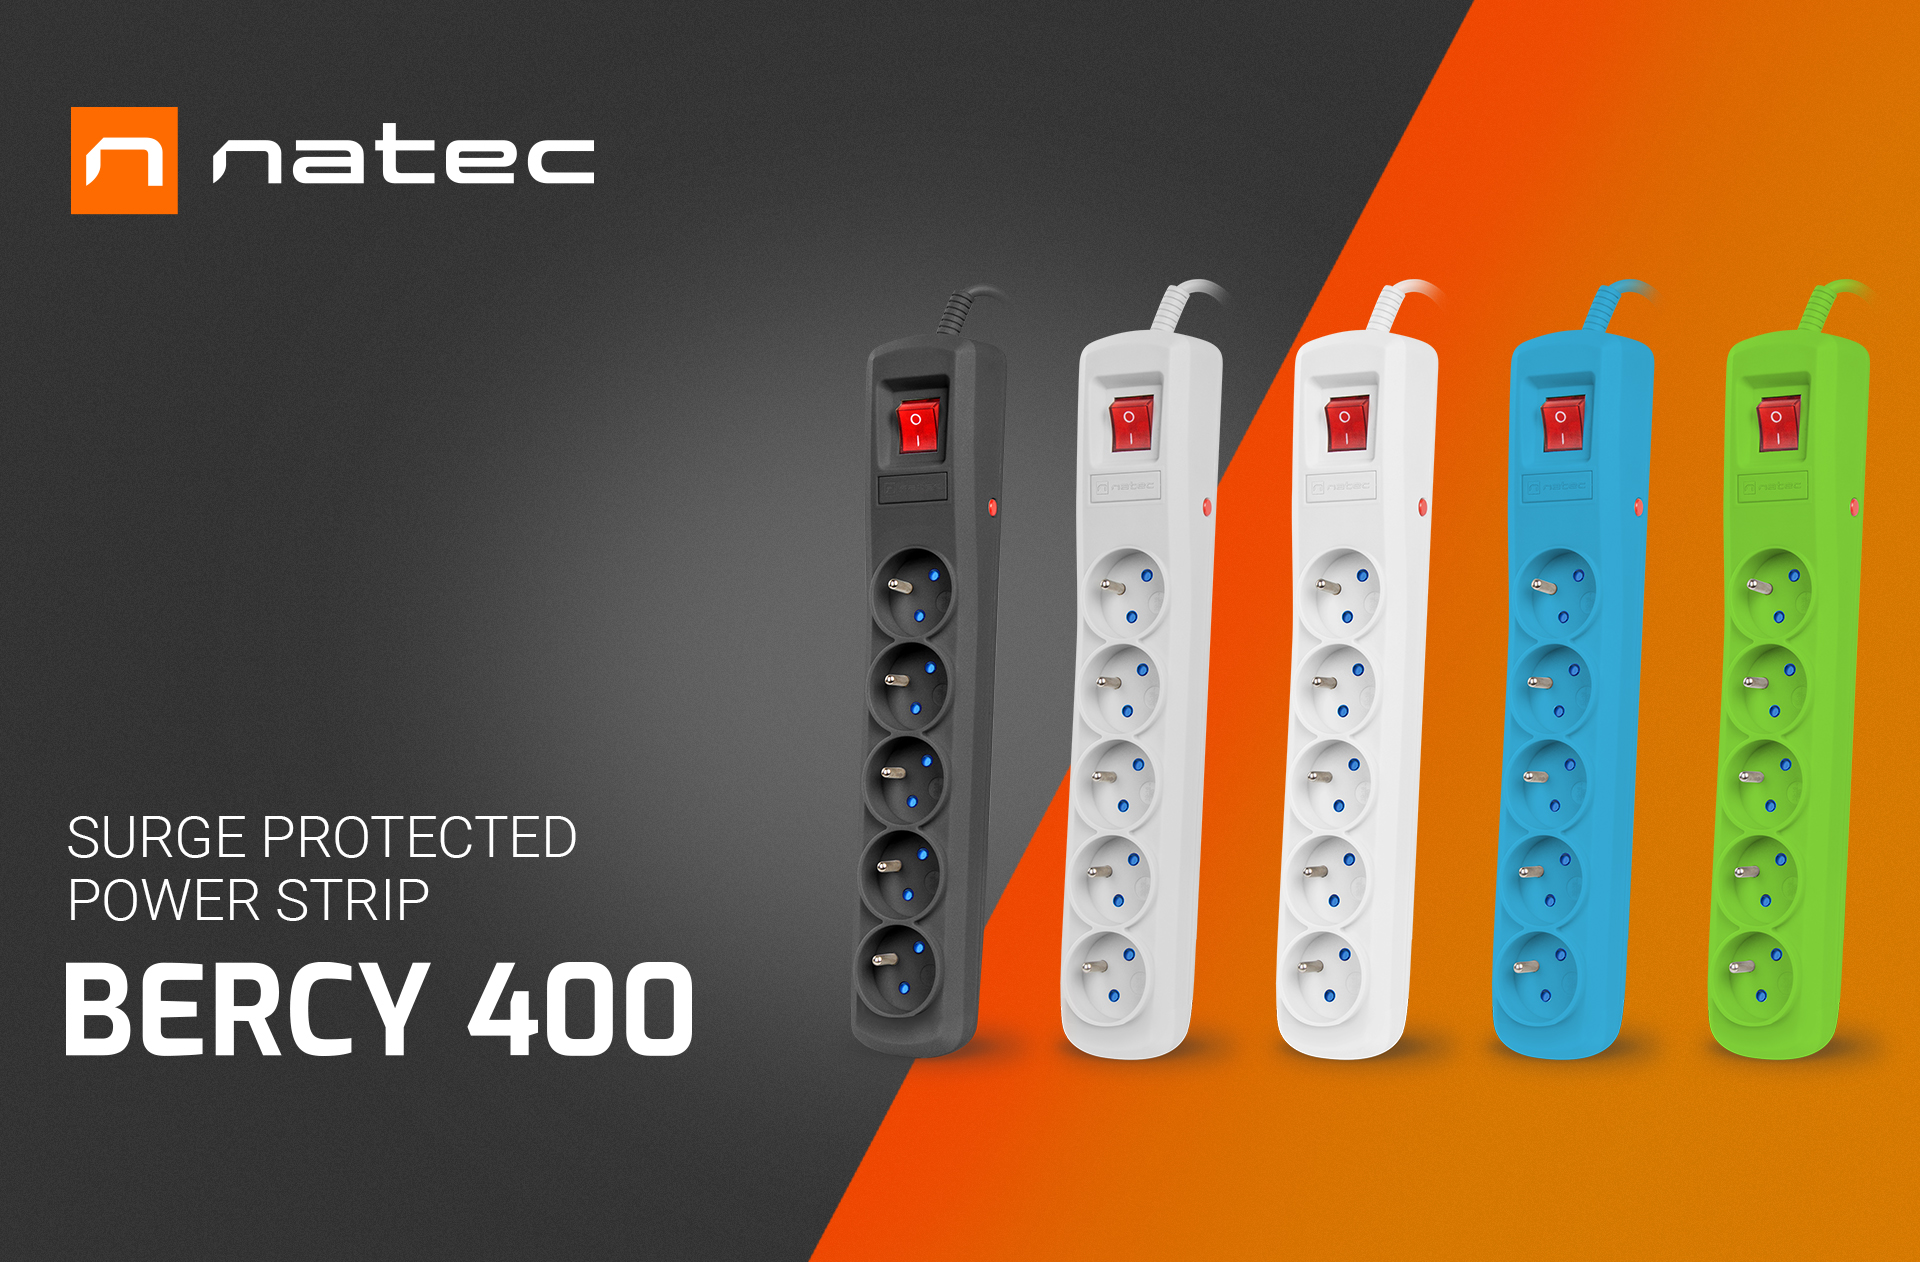 surge protector natec bercy 400 3m 5x french outlets white 1